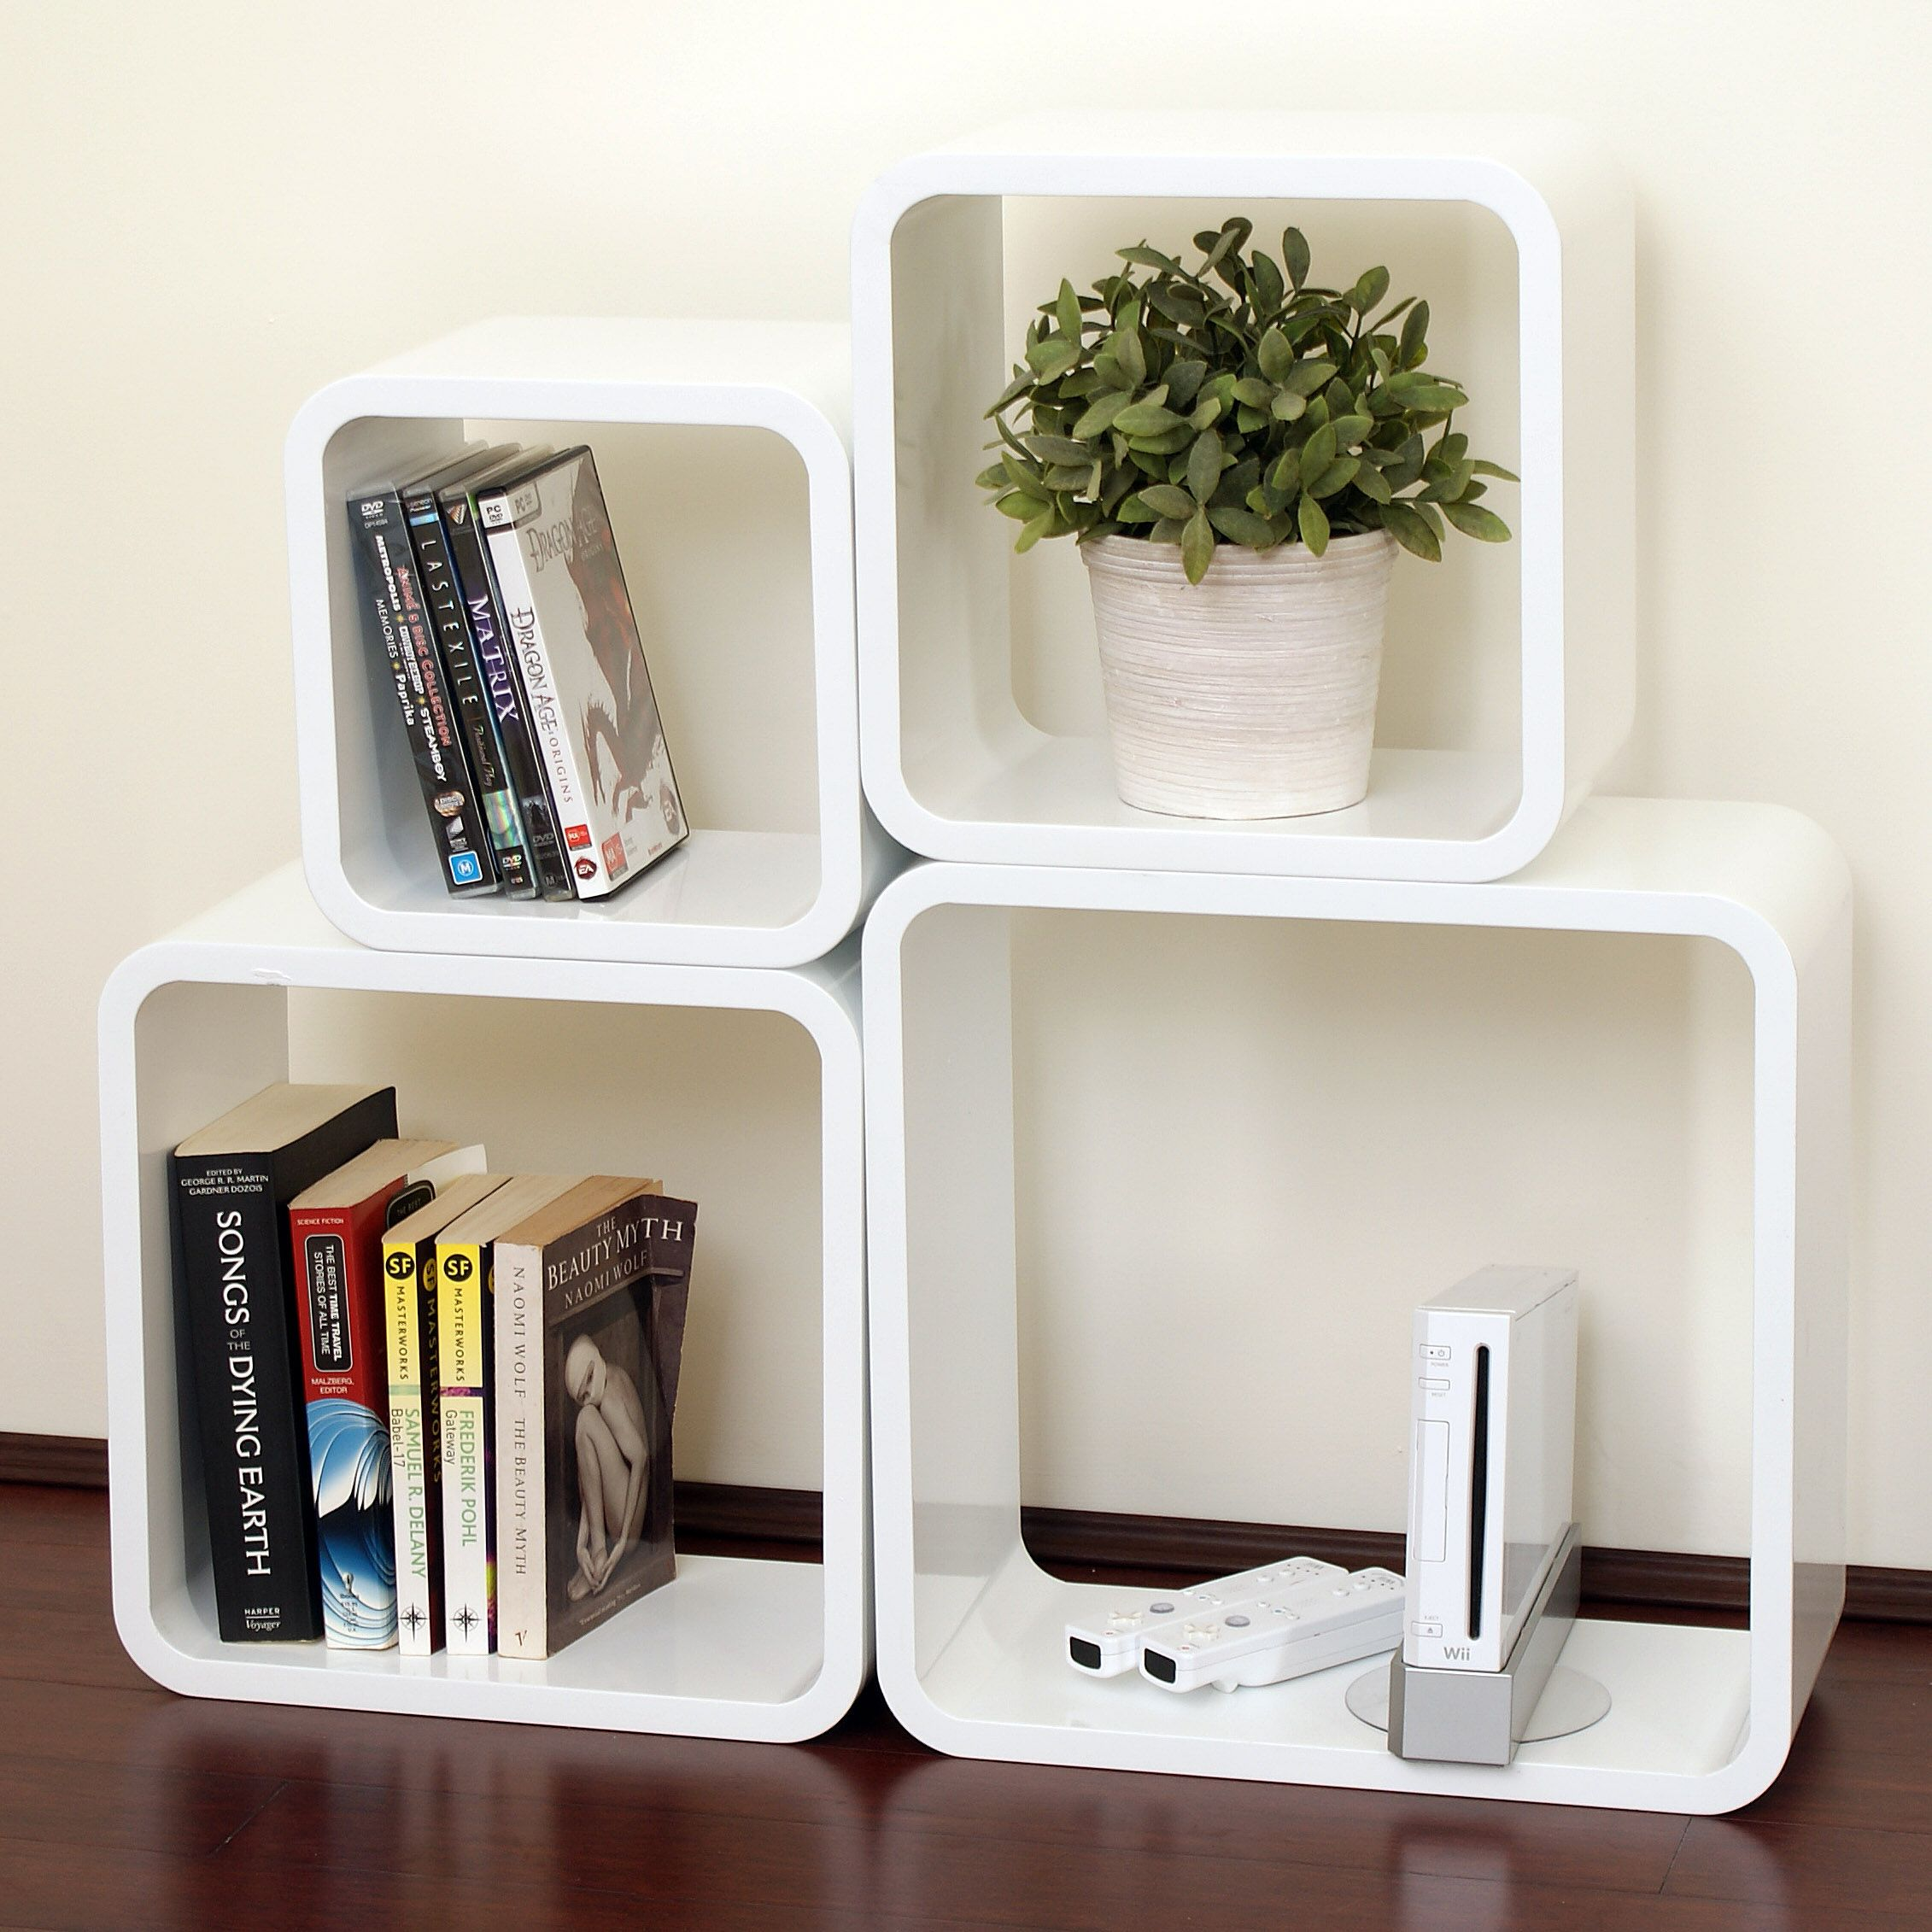 Astounding Ikea White Square Storage Unit With Open Racks Design As Perfect Complementary Furniture For You Rack Design Square Storage Ottoman Ikea Box Shelves